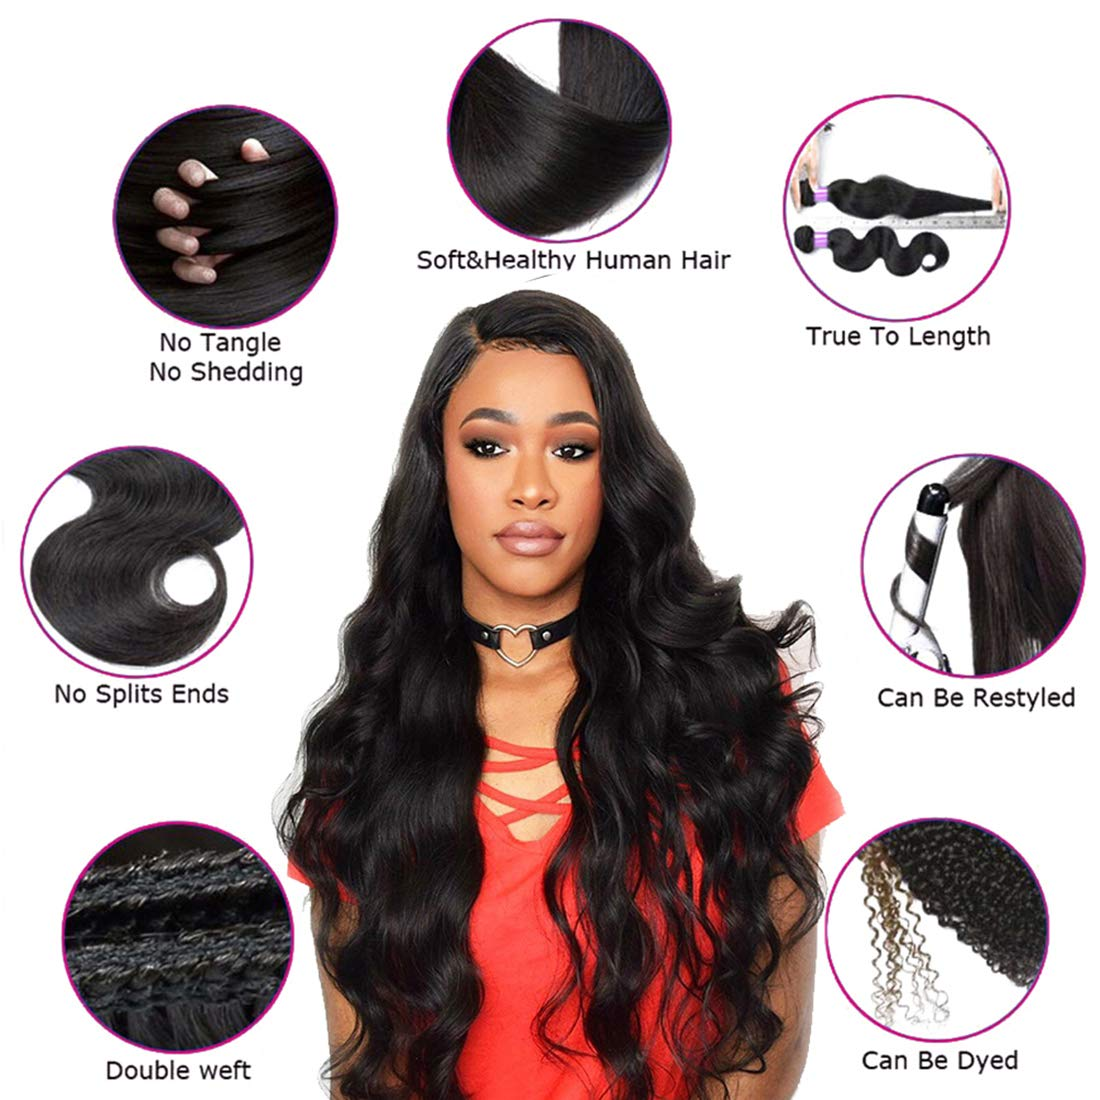 Practical 3 Bundles Peruvian Afro Kinky Curly With Closure Pre Plucked With Baby Hair Bouncy Curl No Shedding No Tangle Non Remy Black 1b Refreshment Hair Extensions & Wigs Human Hair Weaves